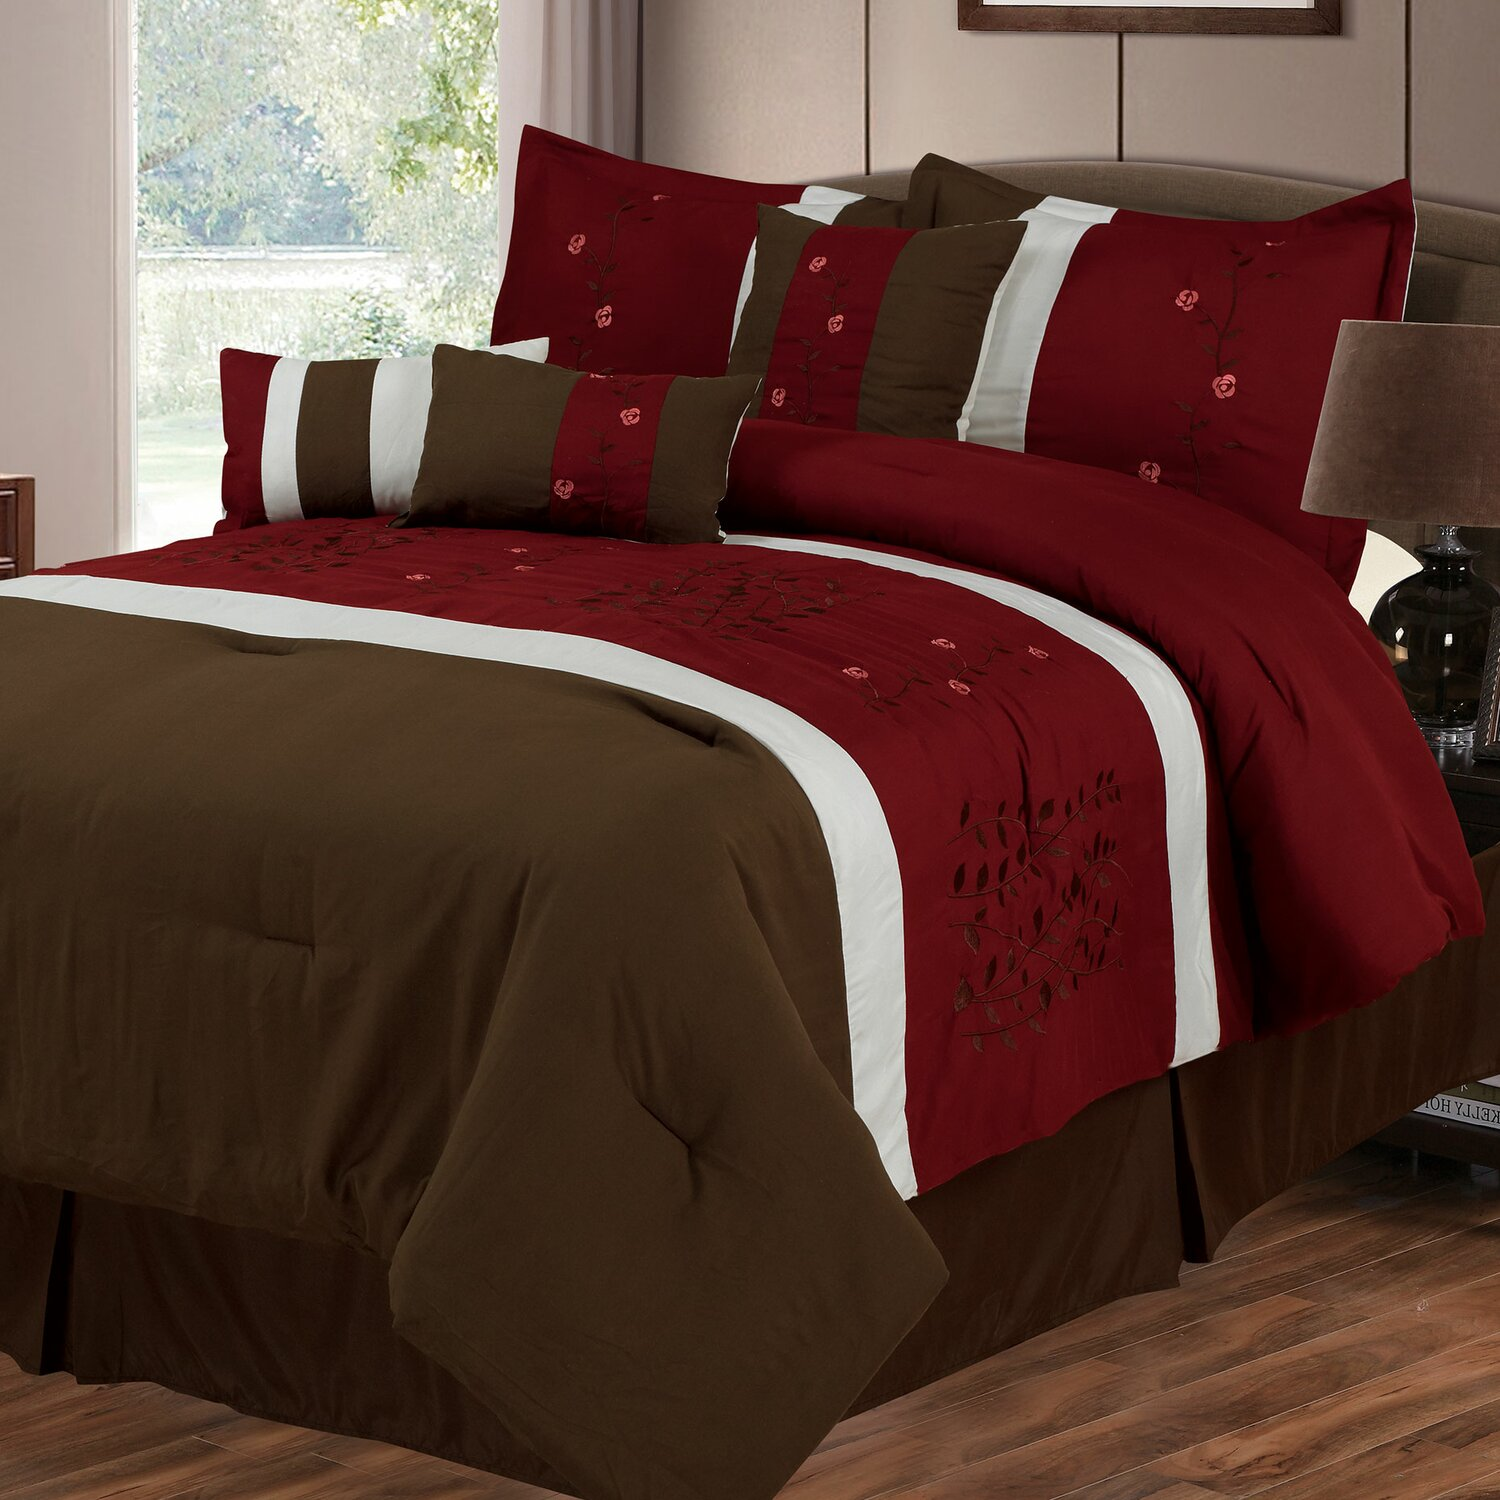 Brown and red bedding - Red And Brown Bedding Set